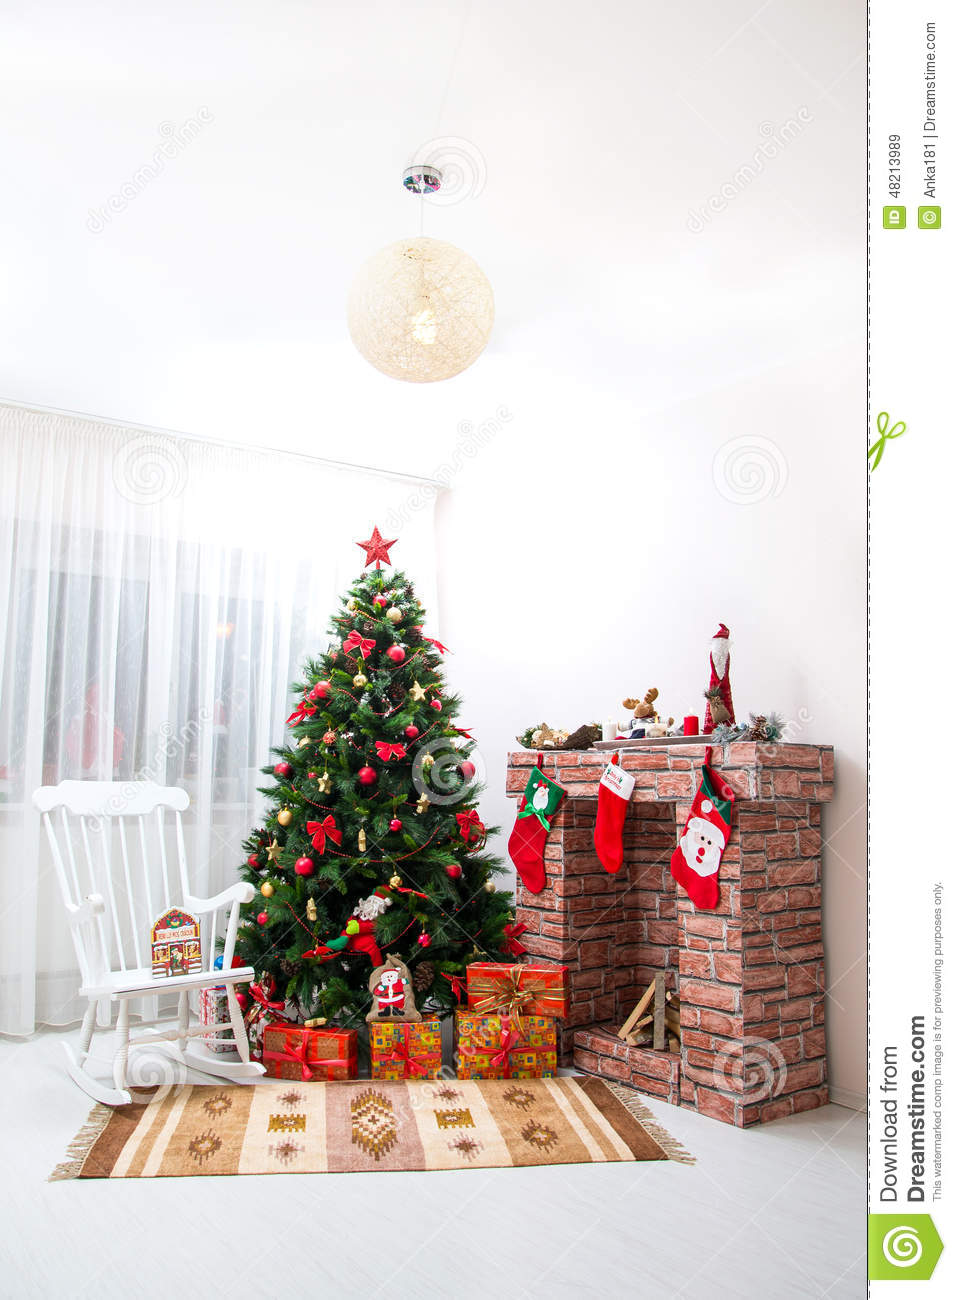 Surprising Christmas Decorations Stock Image Image Of Rocking Holiday Machost Co Dining Chair Design Ideas Machostcouk